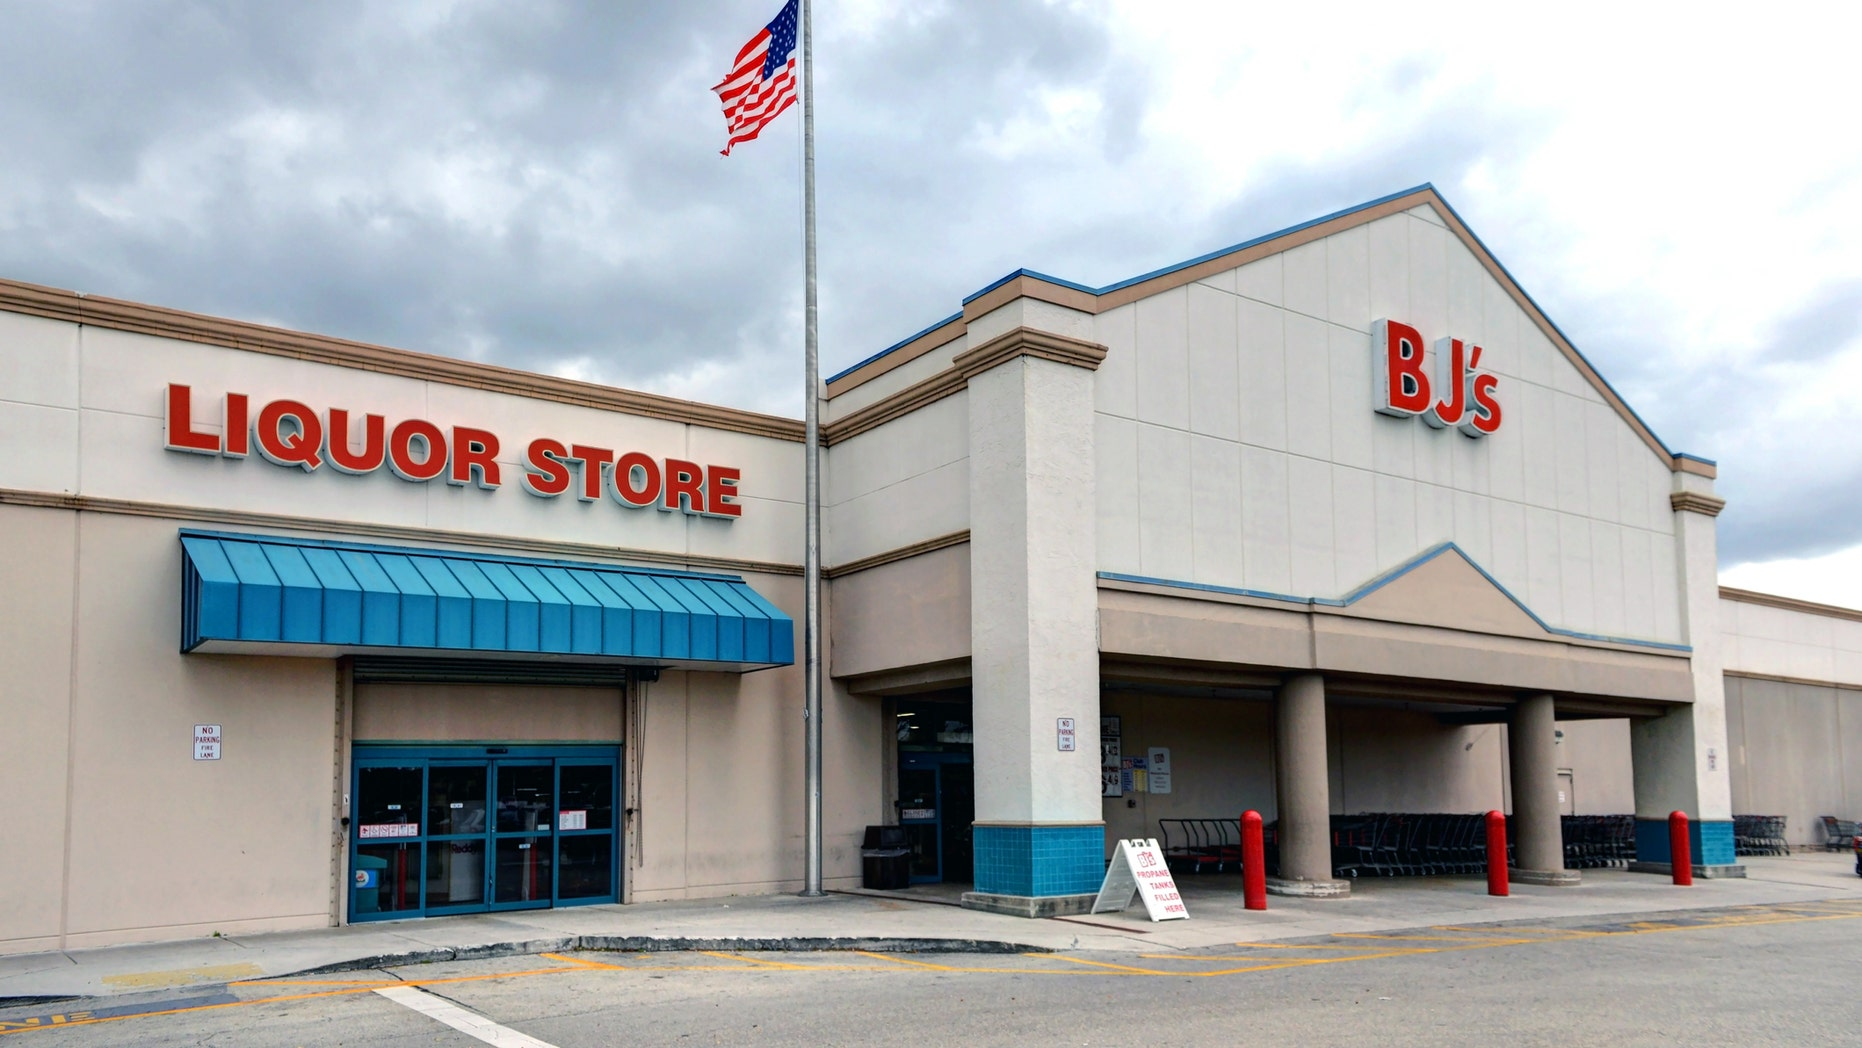 Hollywood, FL, USA - March 5, 2017: BJ's is a membership only Wholesale Club with over 200 locations mainly on the East Coast of the USA. This location at Oakwood Plaza has an adjacent liquor store.